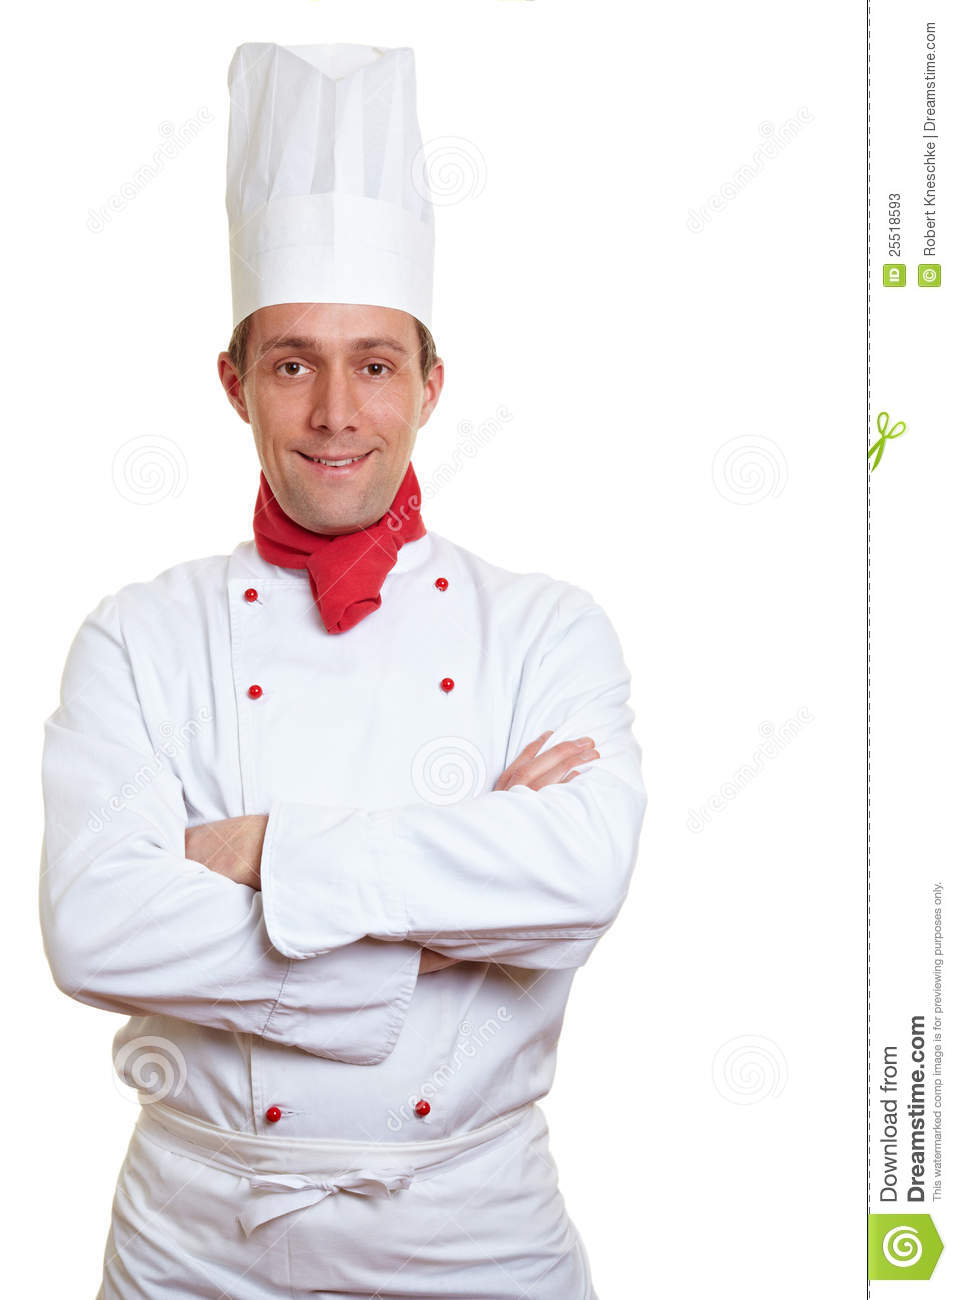 chef cook with arms crossed stock image image of restaurant hotel 25518593. Black Bedroom Furniture Sets. Home Design Ideas